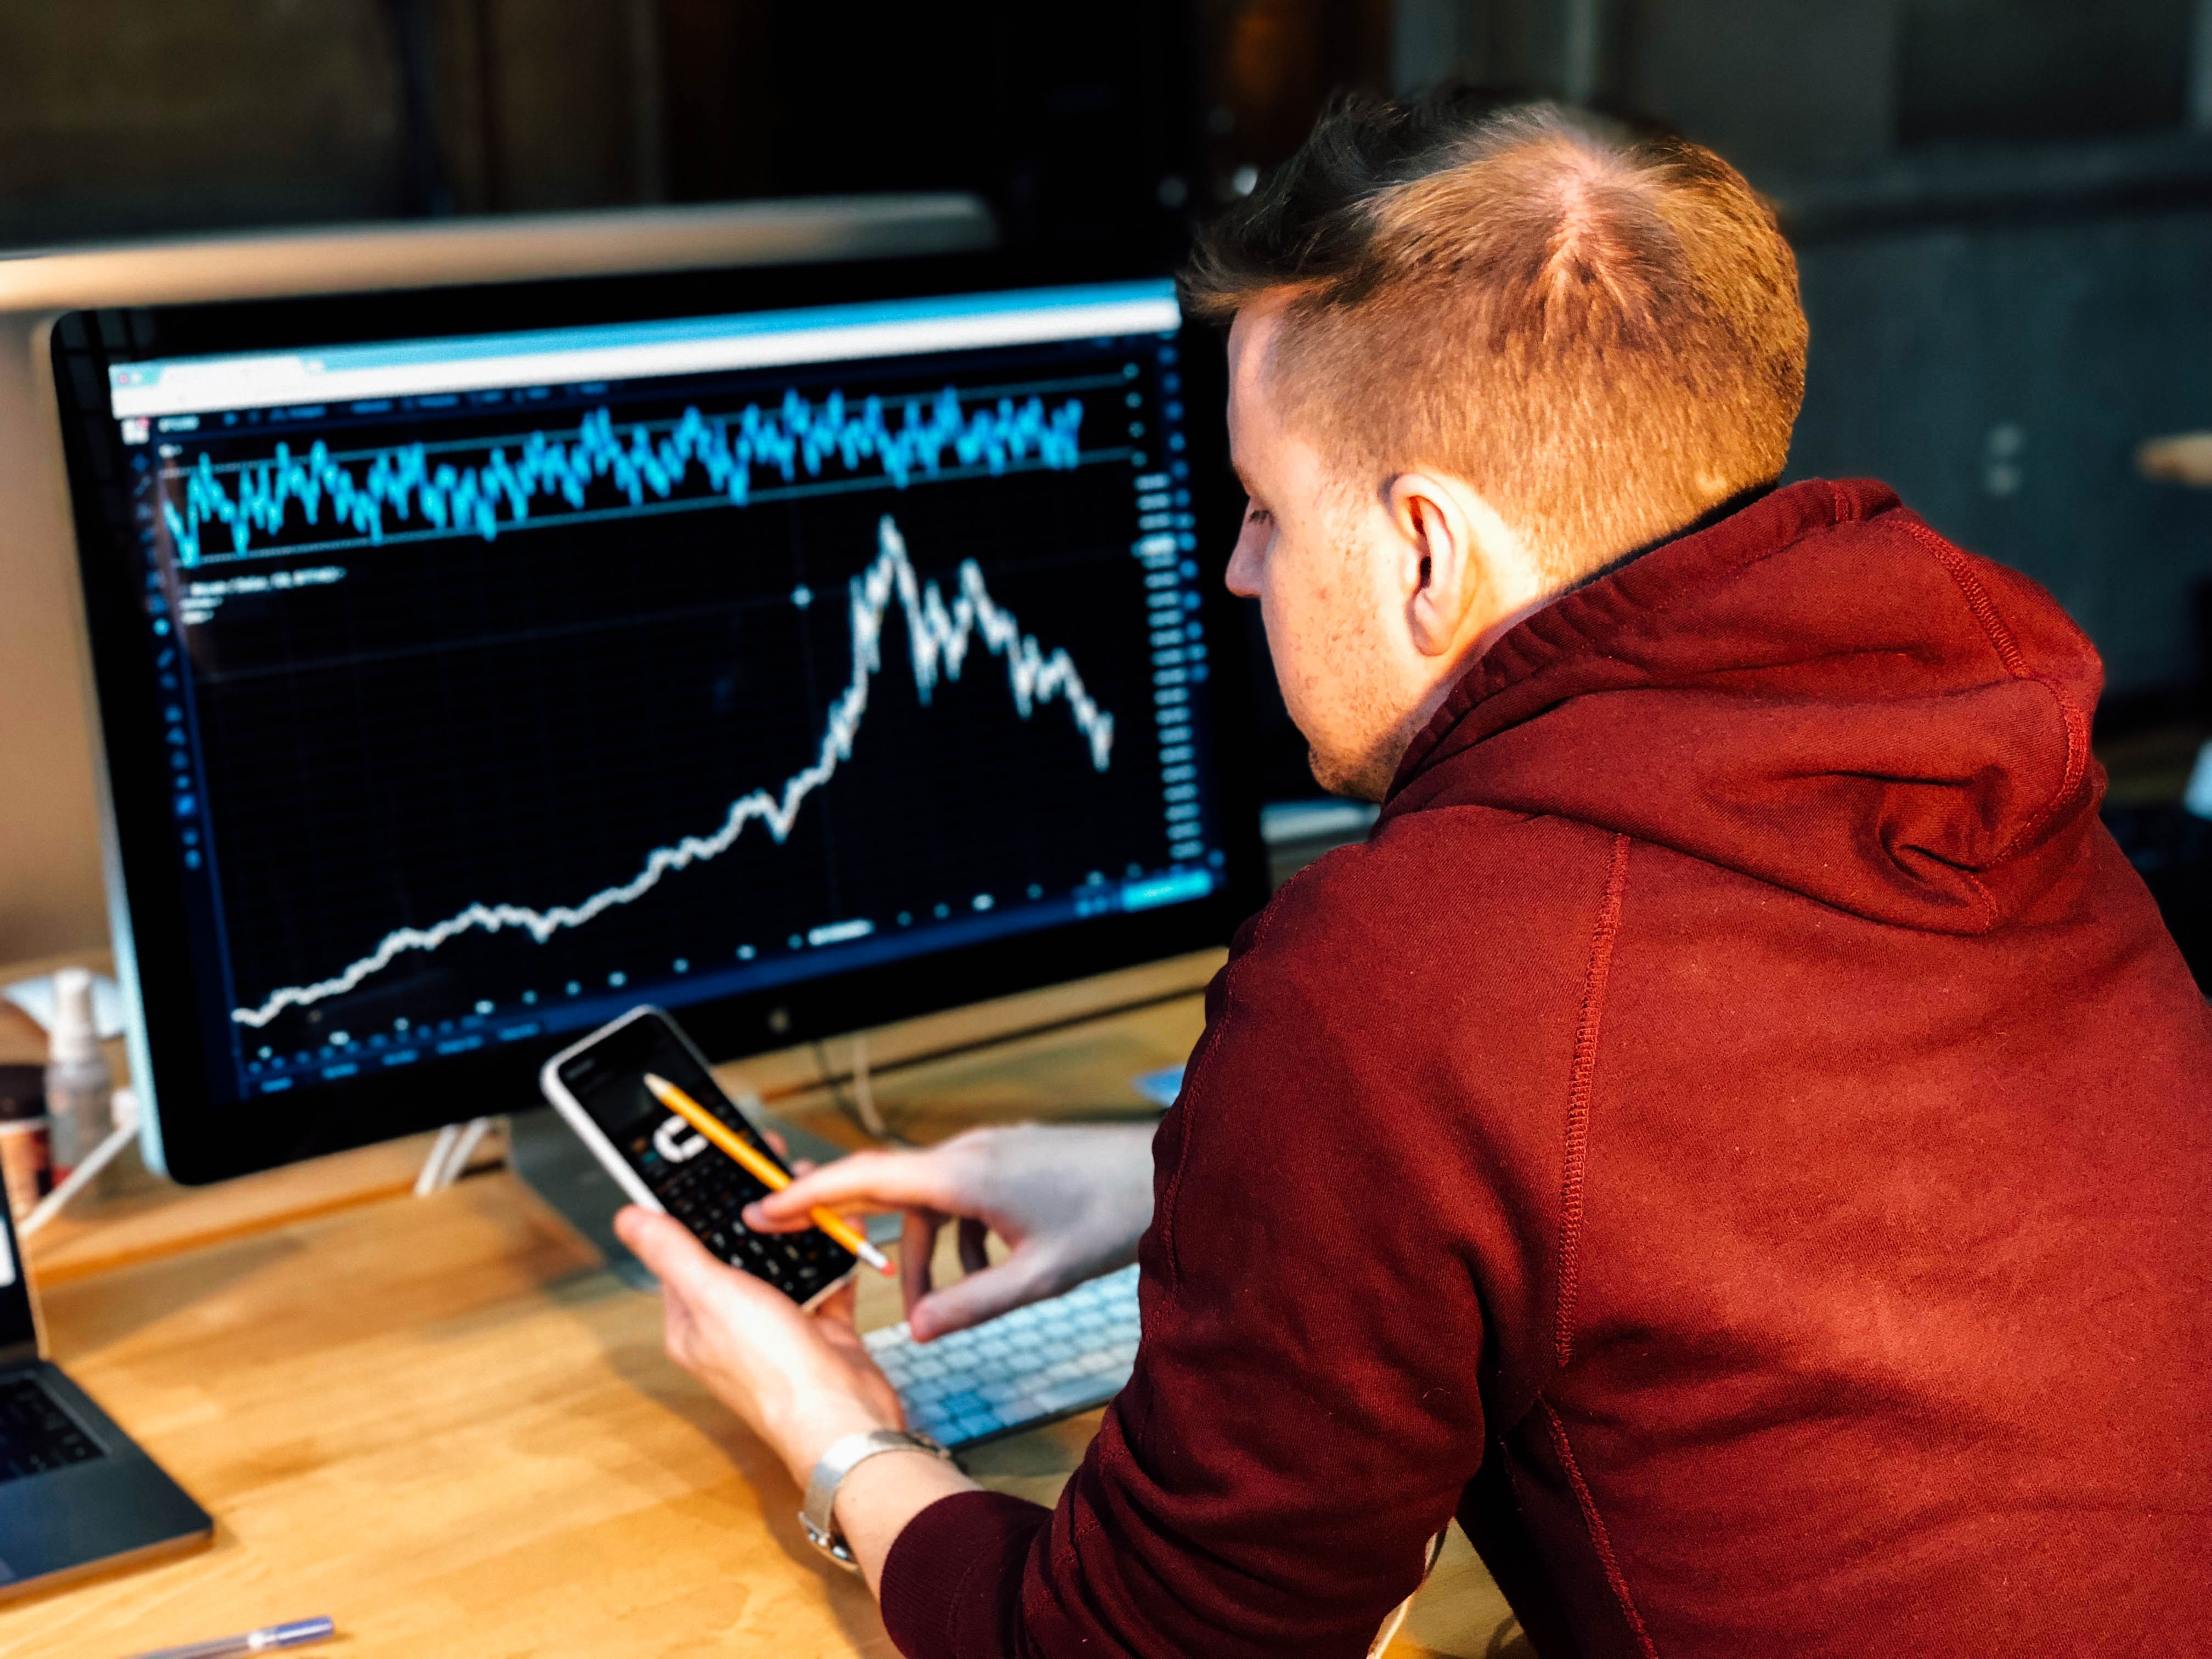 Essential Traits to Master as a Trader